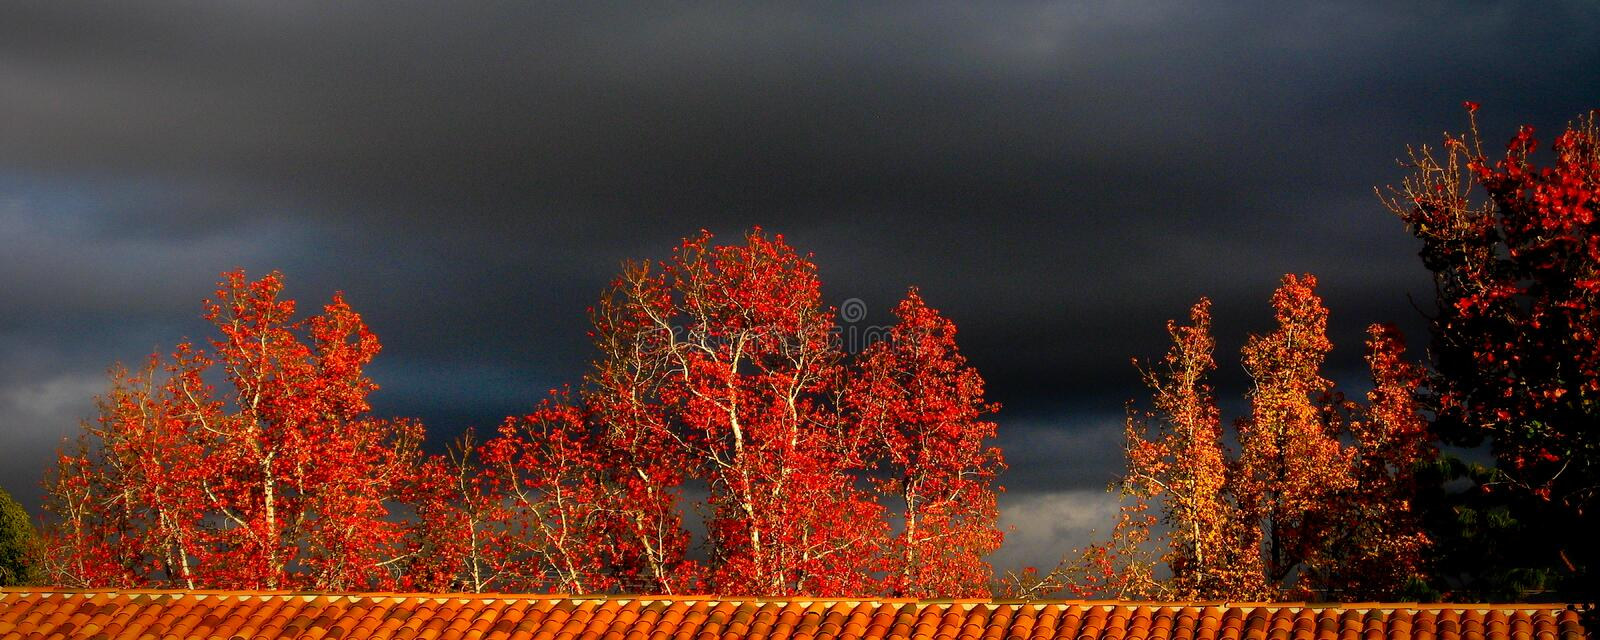 Red Fall Trees with Black Sky royalty free stock photography